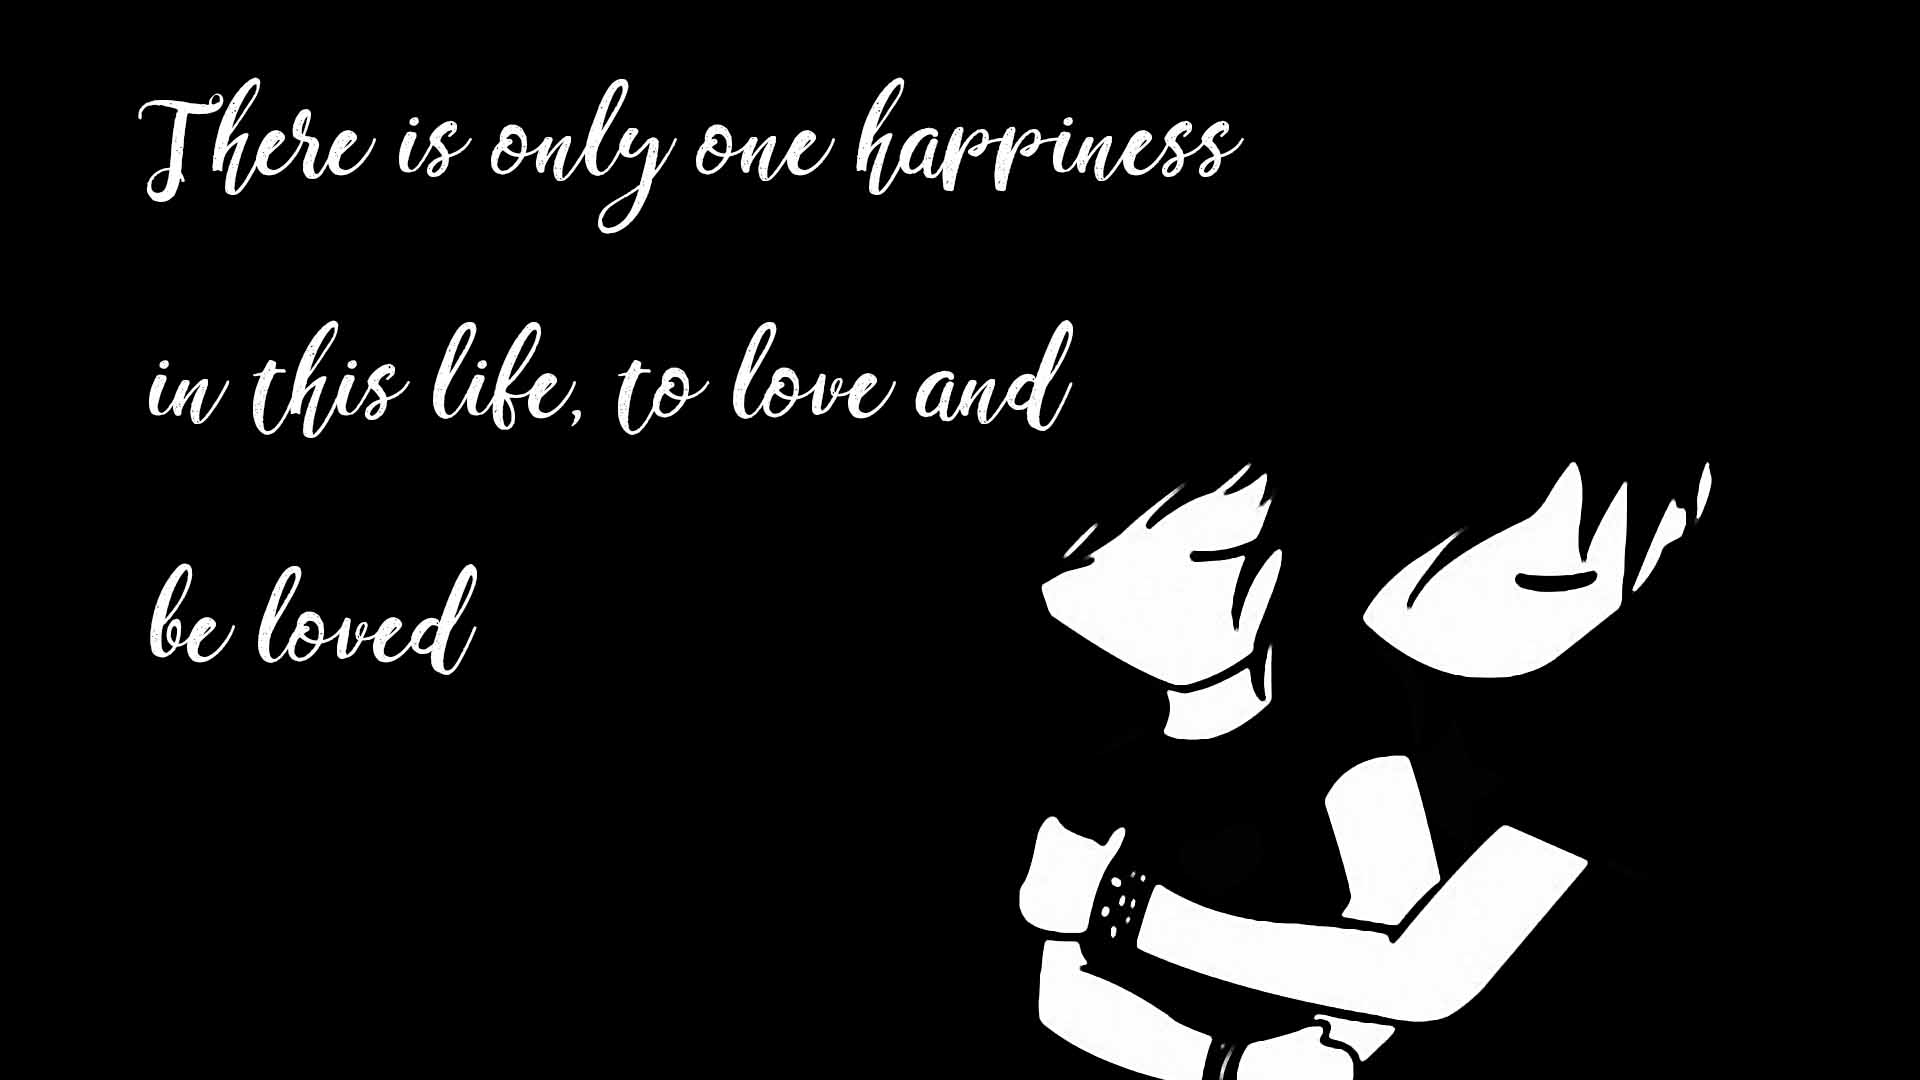 Love Quotes For Her 10 Best Love Quotes For Her With Beautiful Images